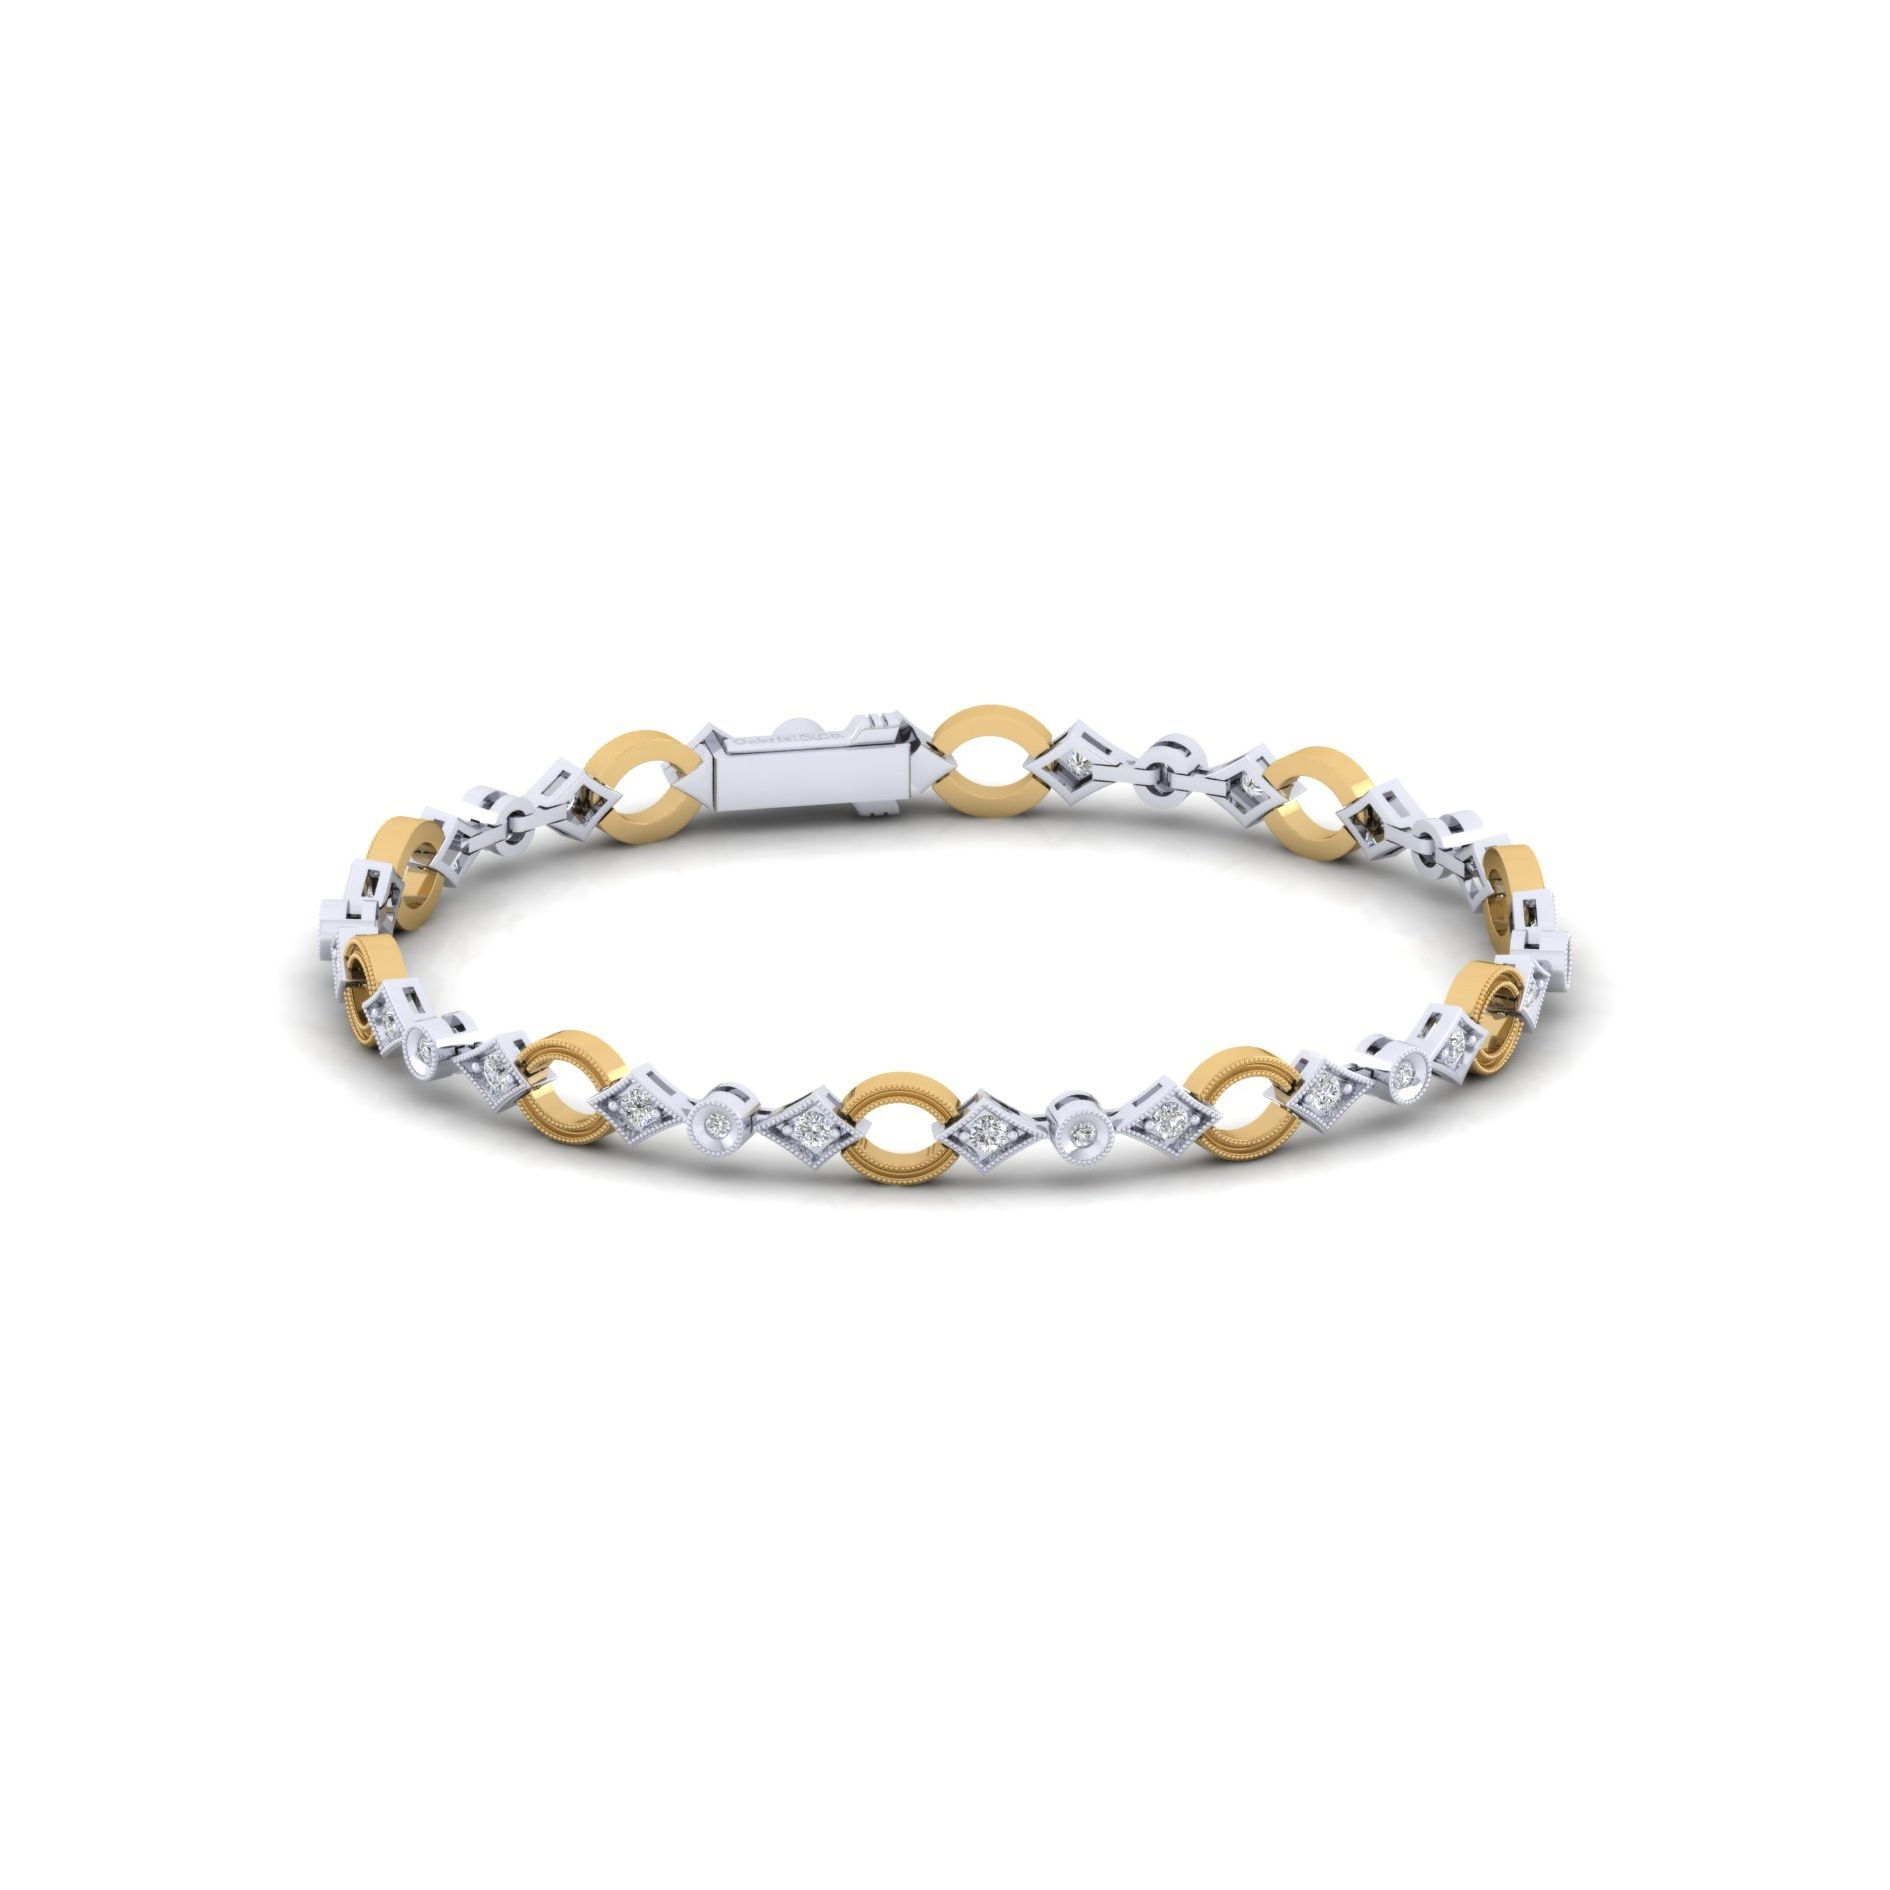 Bracelets - YELLOW/WHITE GOLD TENNIS DIAMOND BRACELET